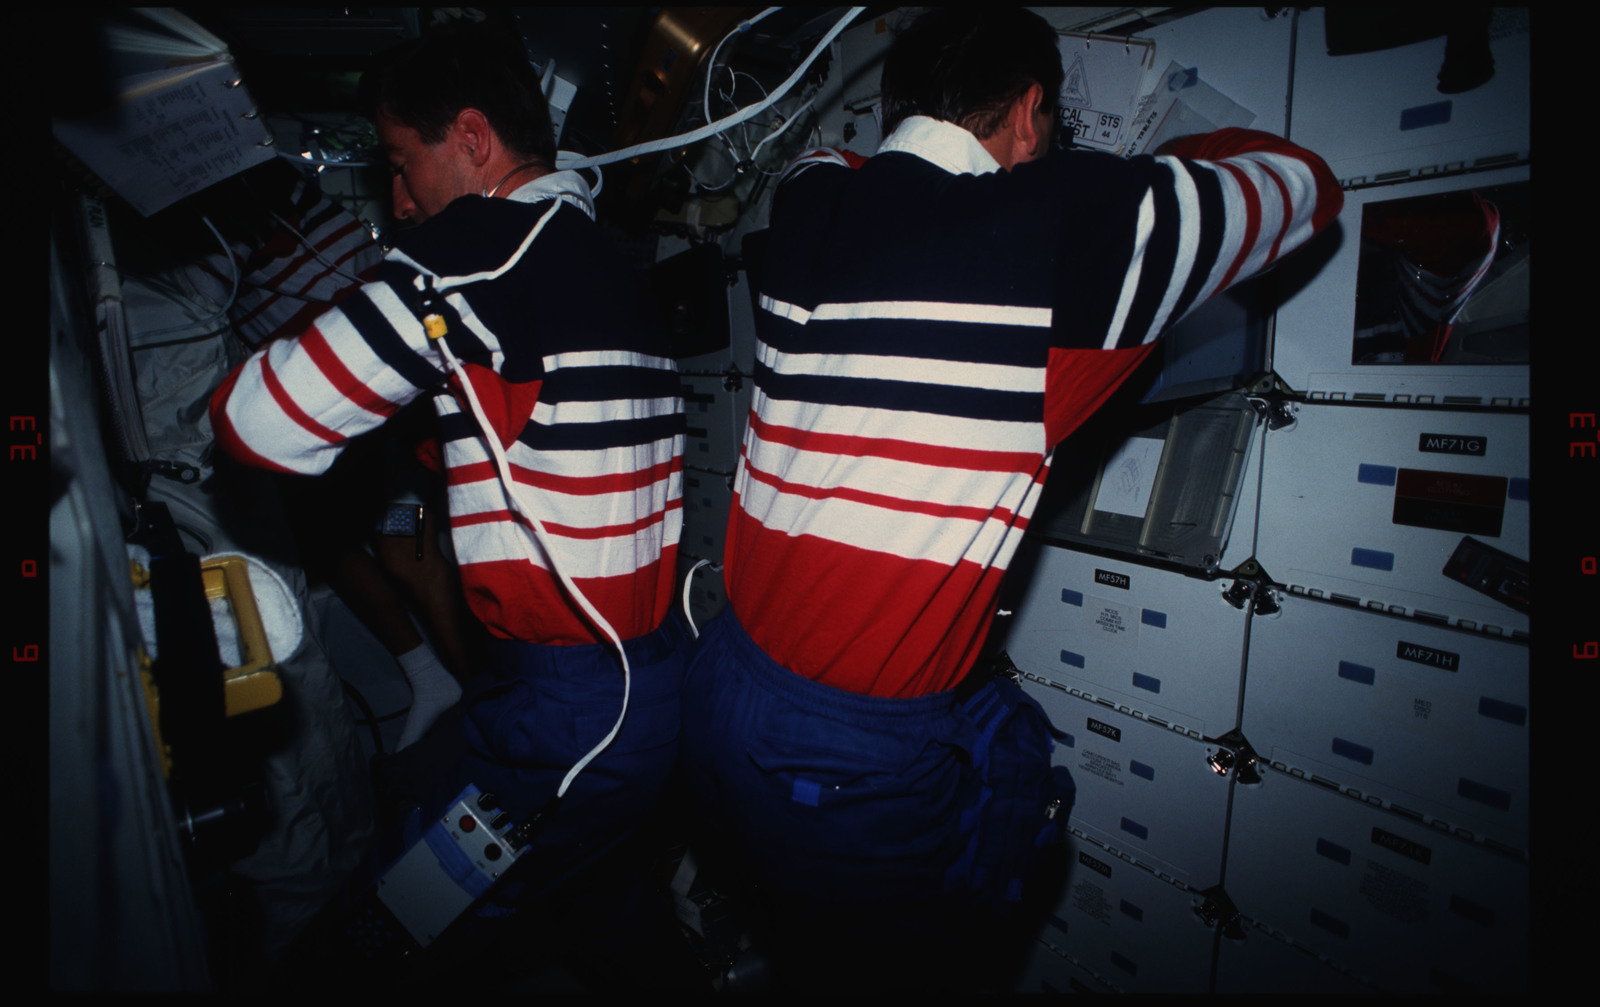 STS044-16-032 - STS-044 - STS-44 Pilot Henricks and PS Hennen work on OV-104's middeck